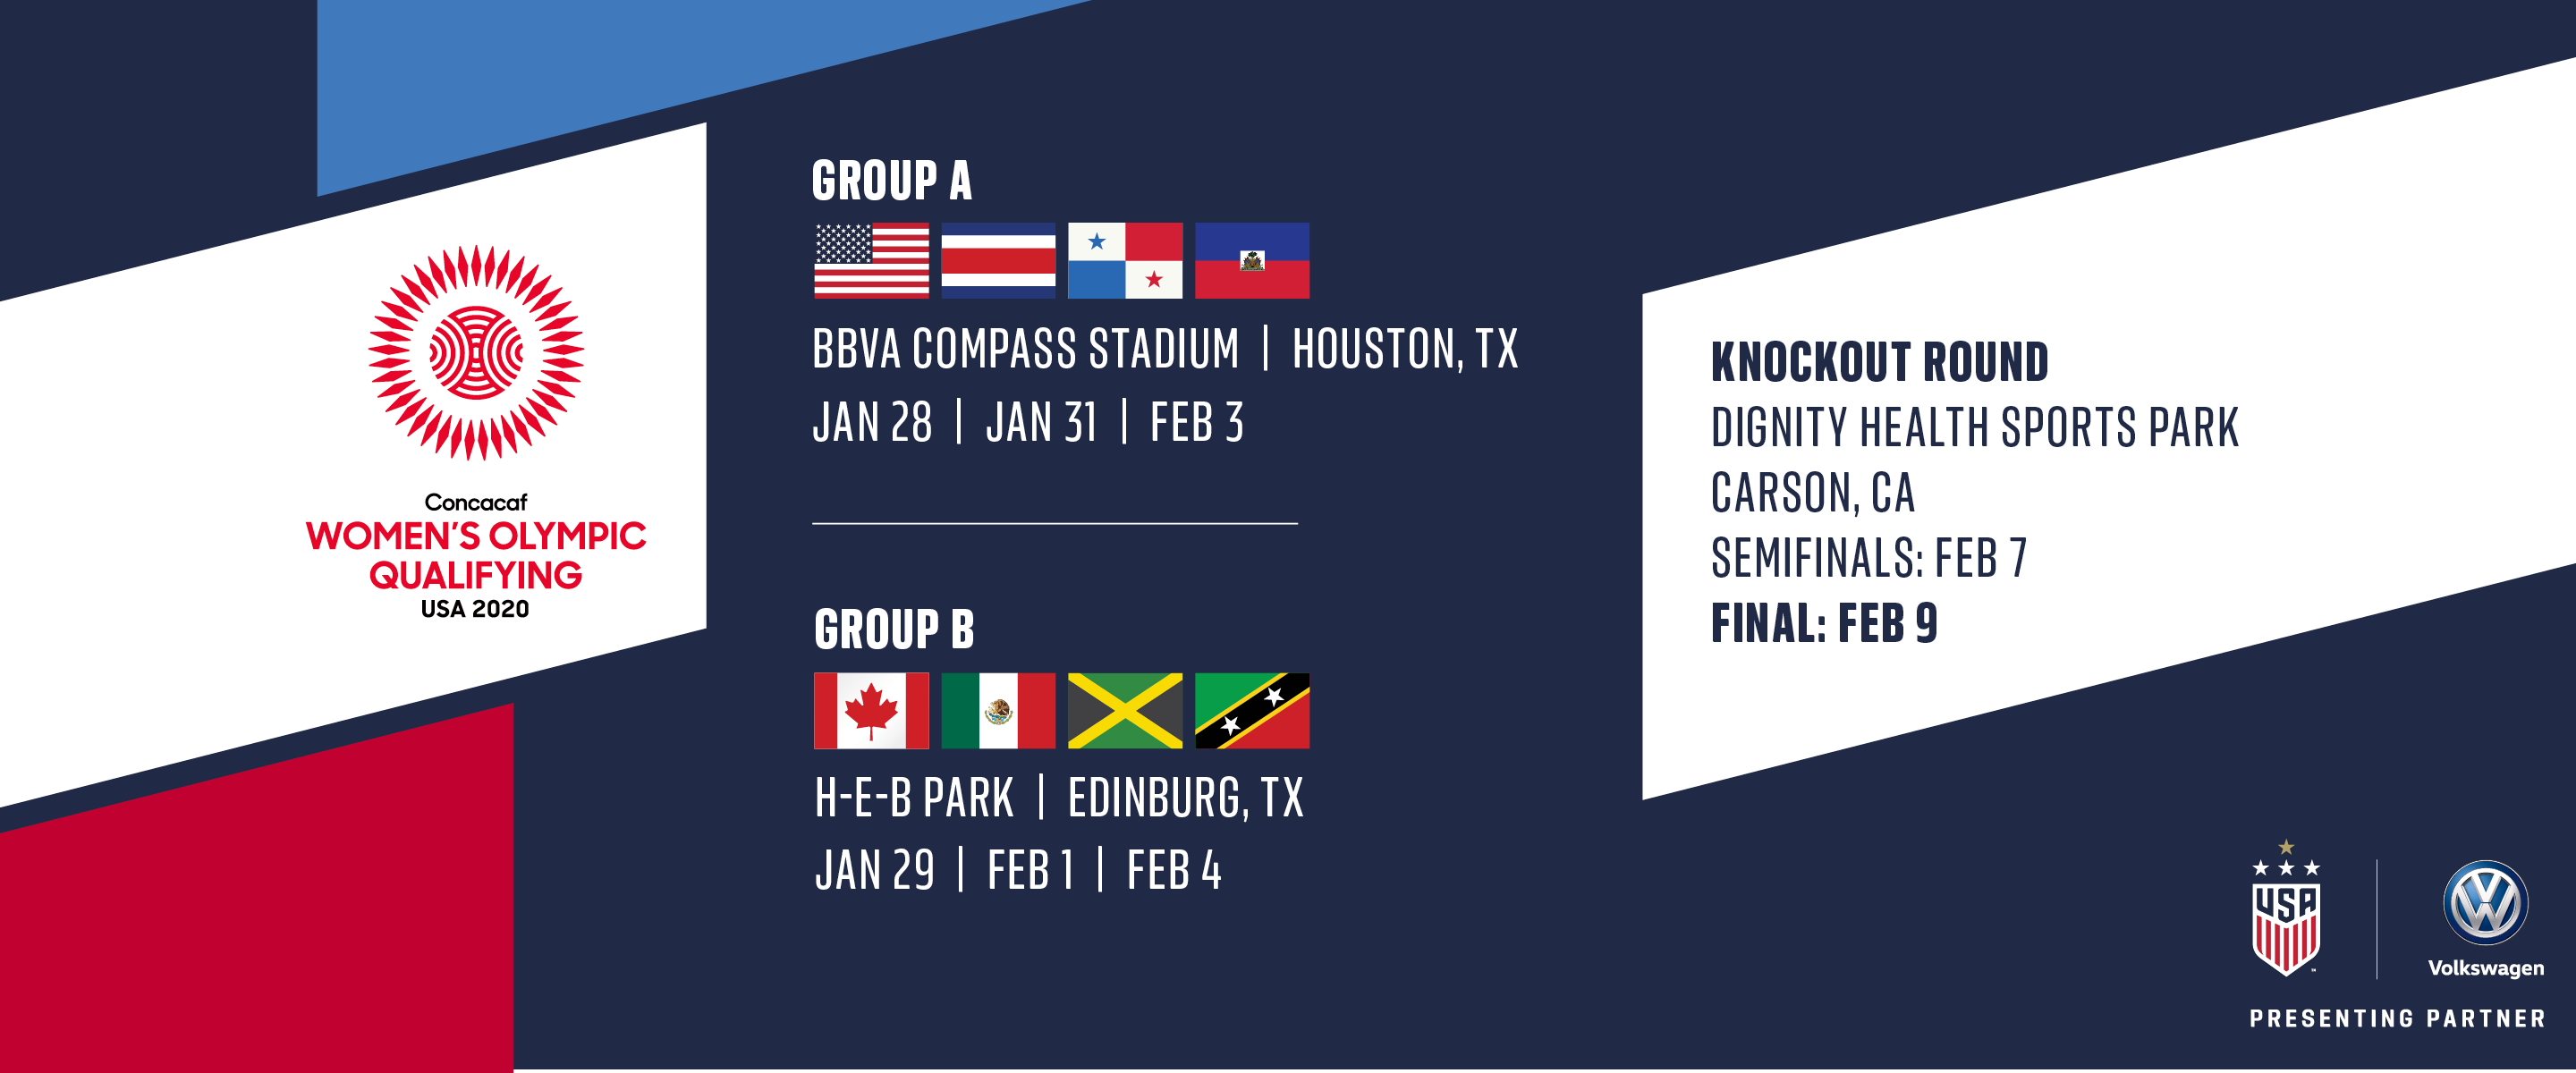 Concacaf Womens World Cup Qualifying 2020.Schedule Set For 2020 Concacaf Women S Olympic Qualifying